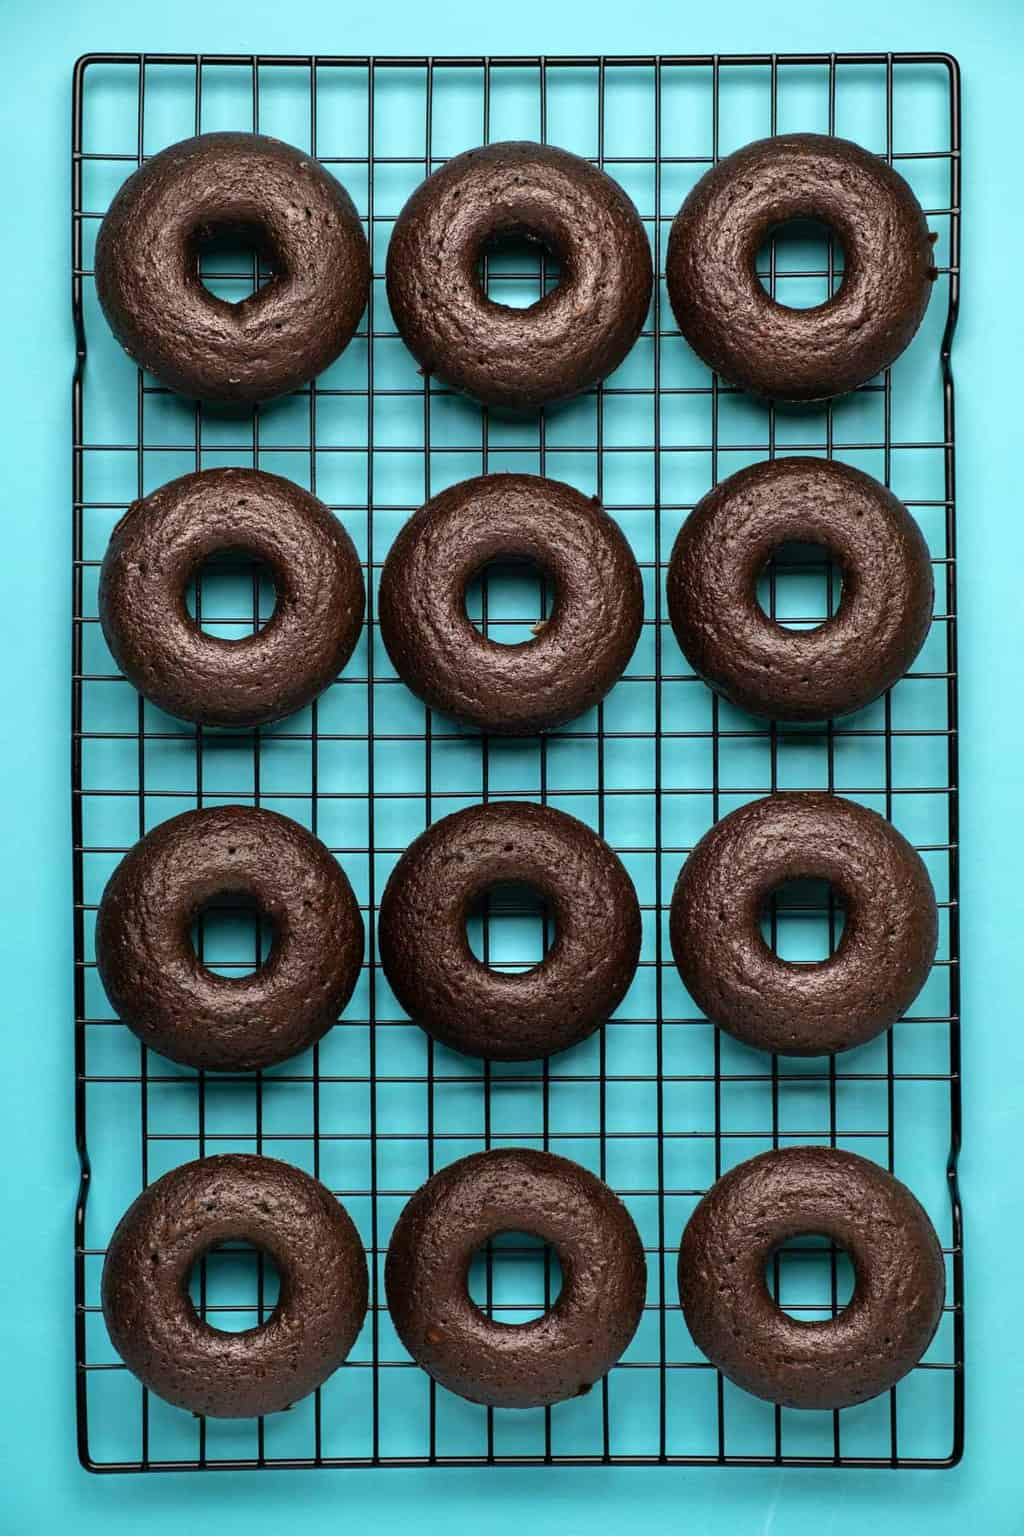 Vegan chocolate donuts on a wire cooling rack.